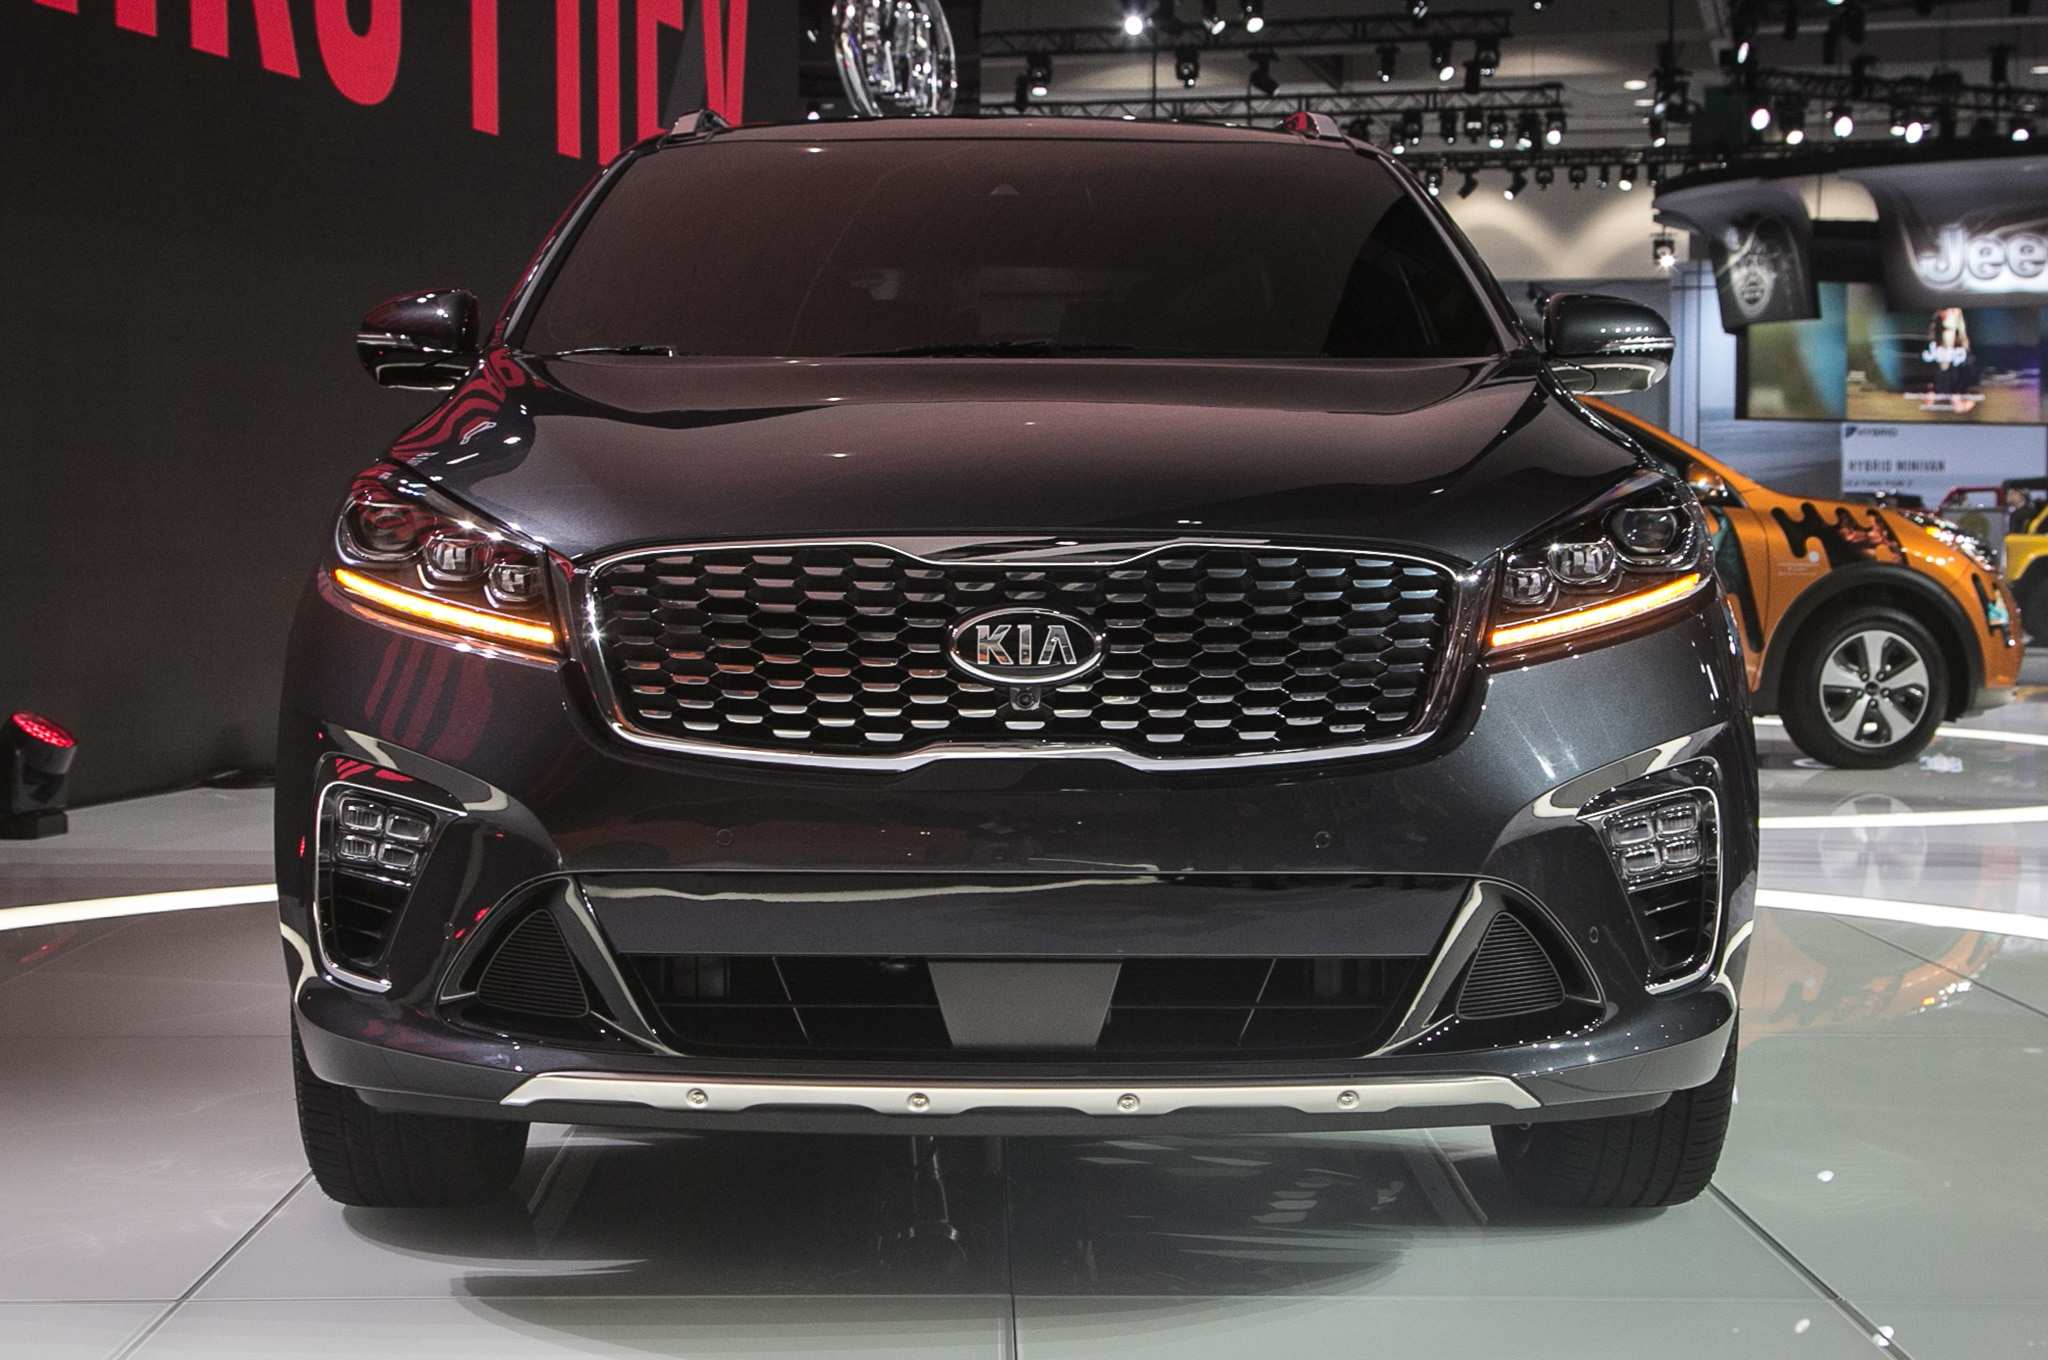 48 All New Kia Lineup 2019 Pictures for Kia Lineup 2019